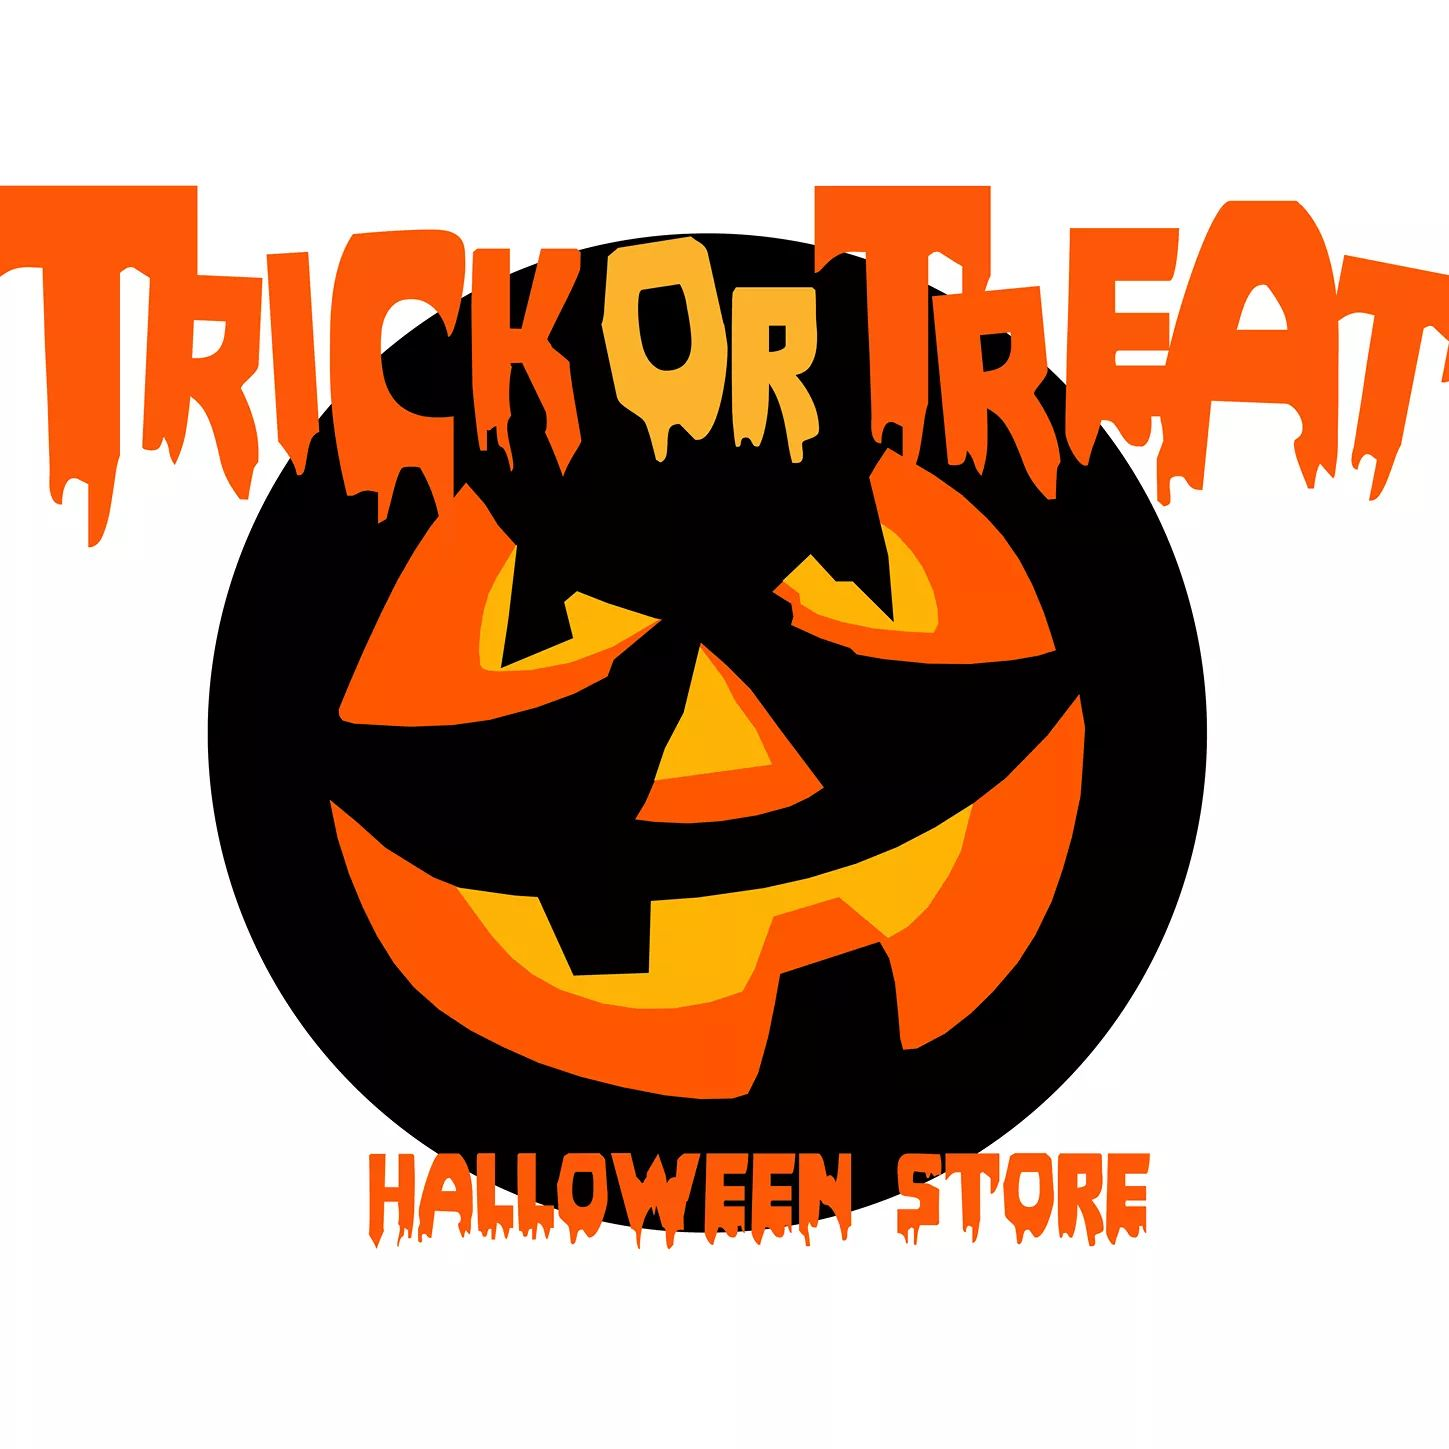 Trick or Treat Halloween Store